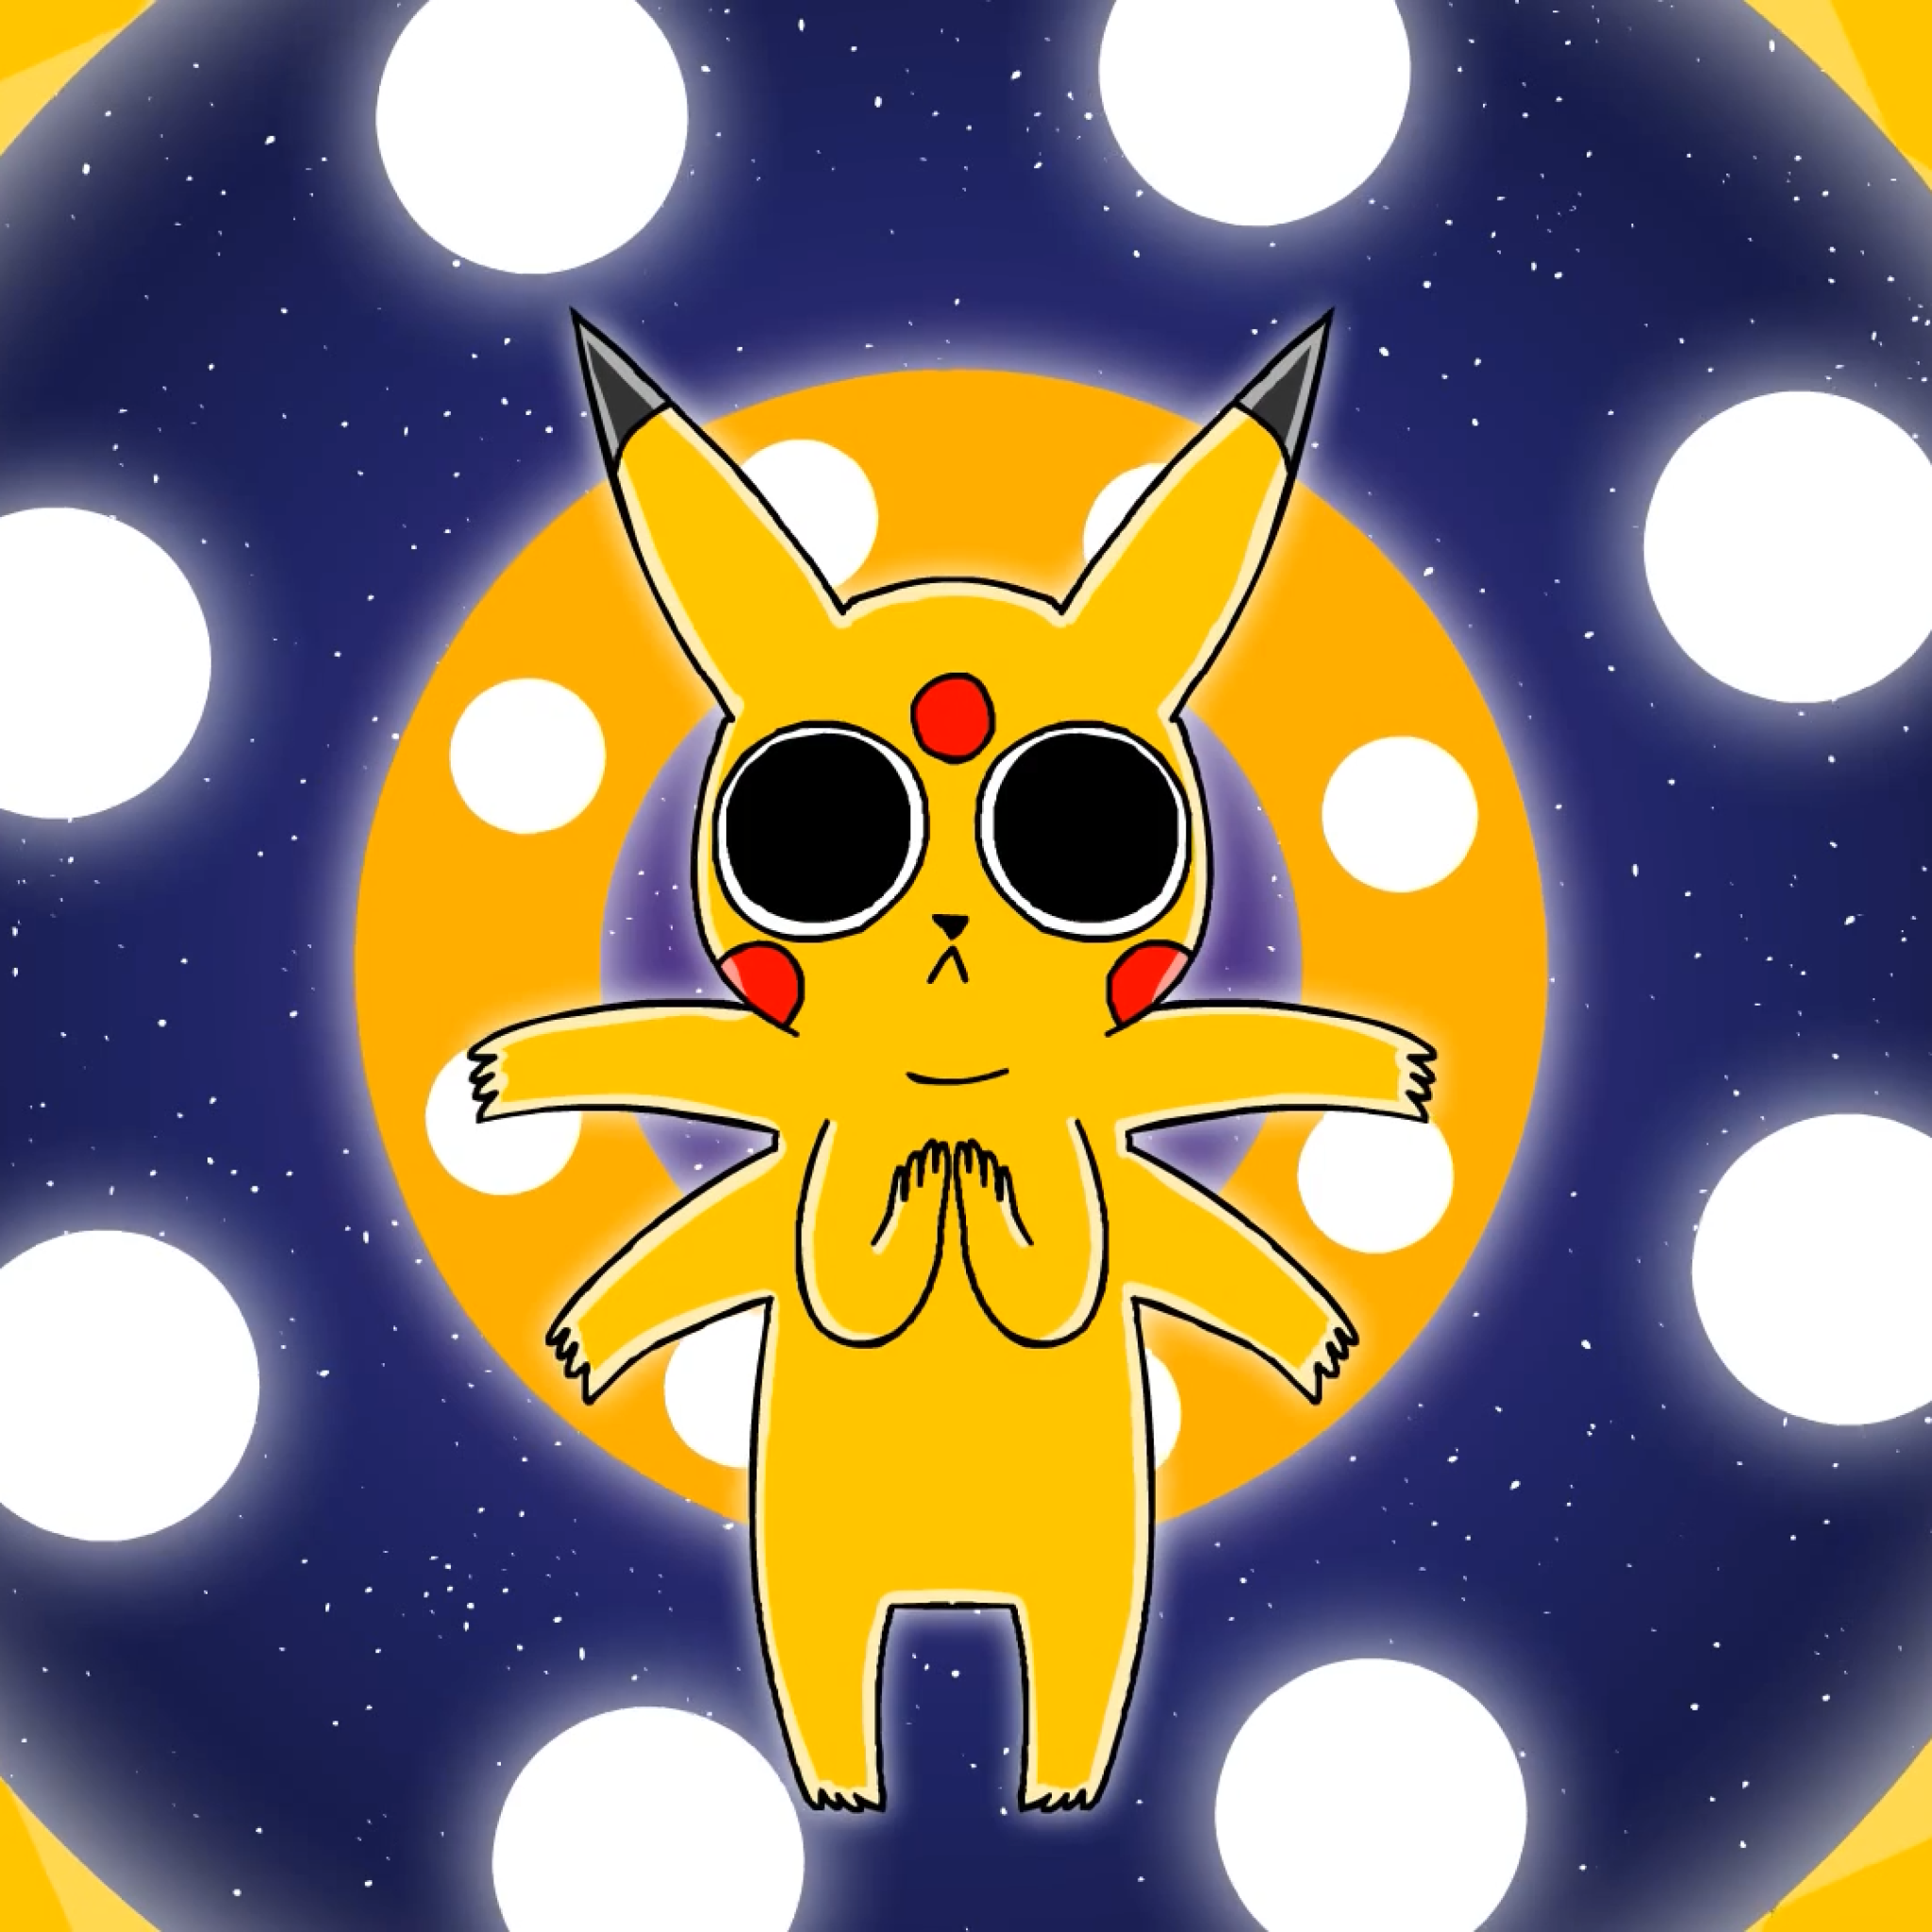 Cute Pikachu Tap to see more cool pokemon wallpaper